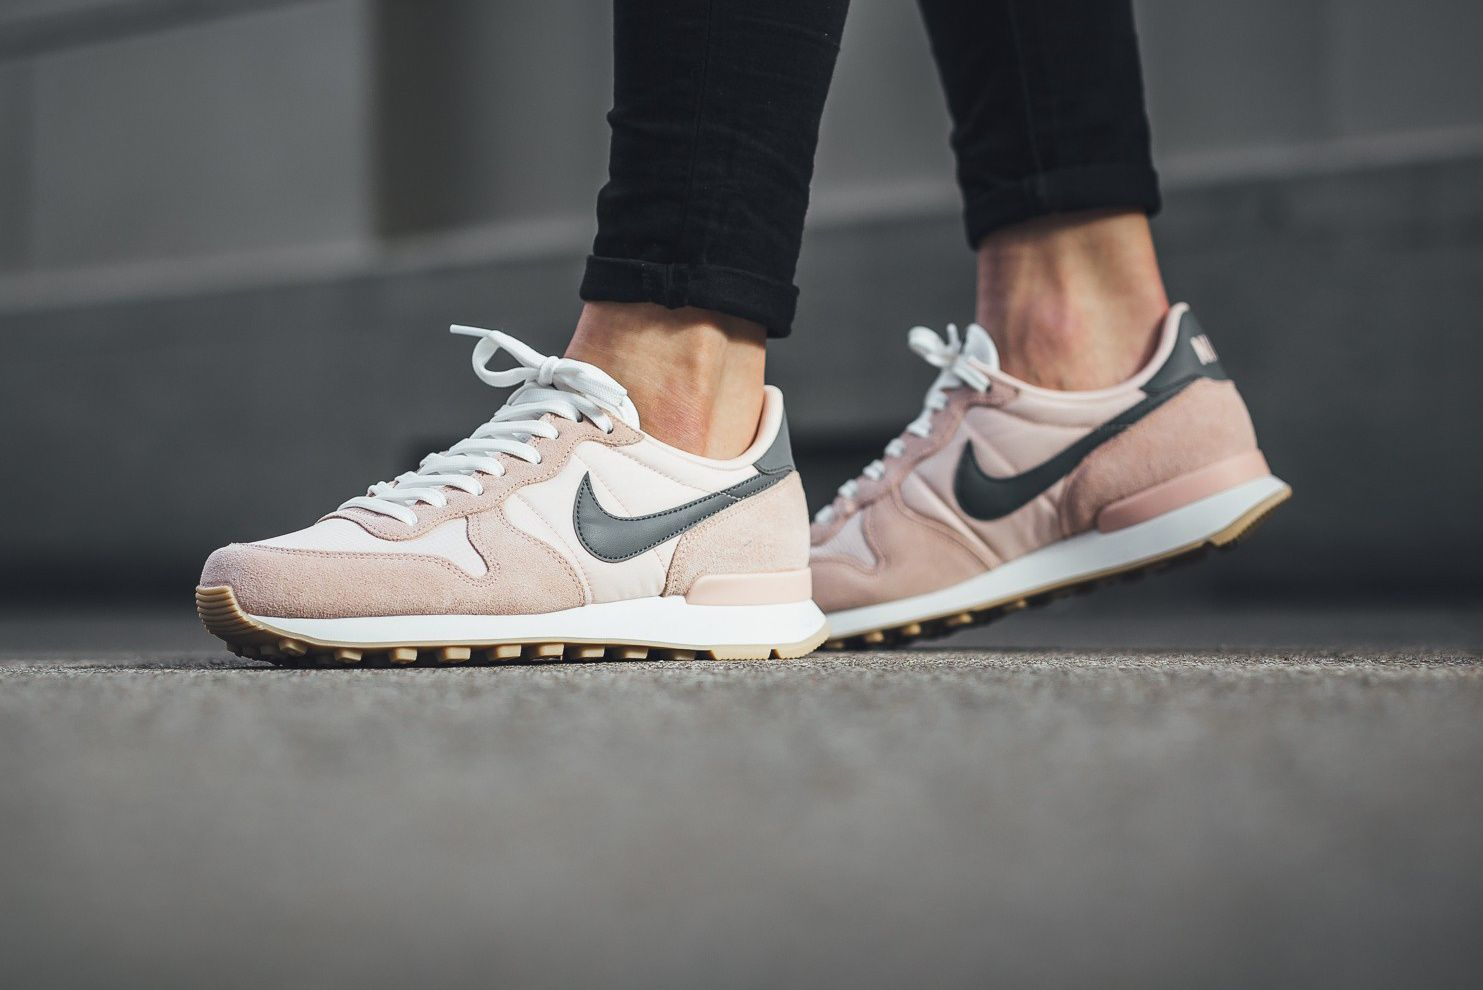 Método silencio Consumir  Take a Light Pink Stab on a New Nike Internationalist | Pink nike shoes, Nike  internationalist pink, Pink nikes